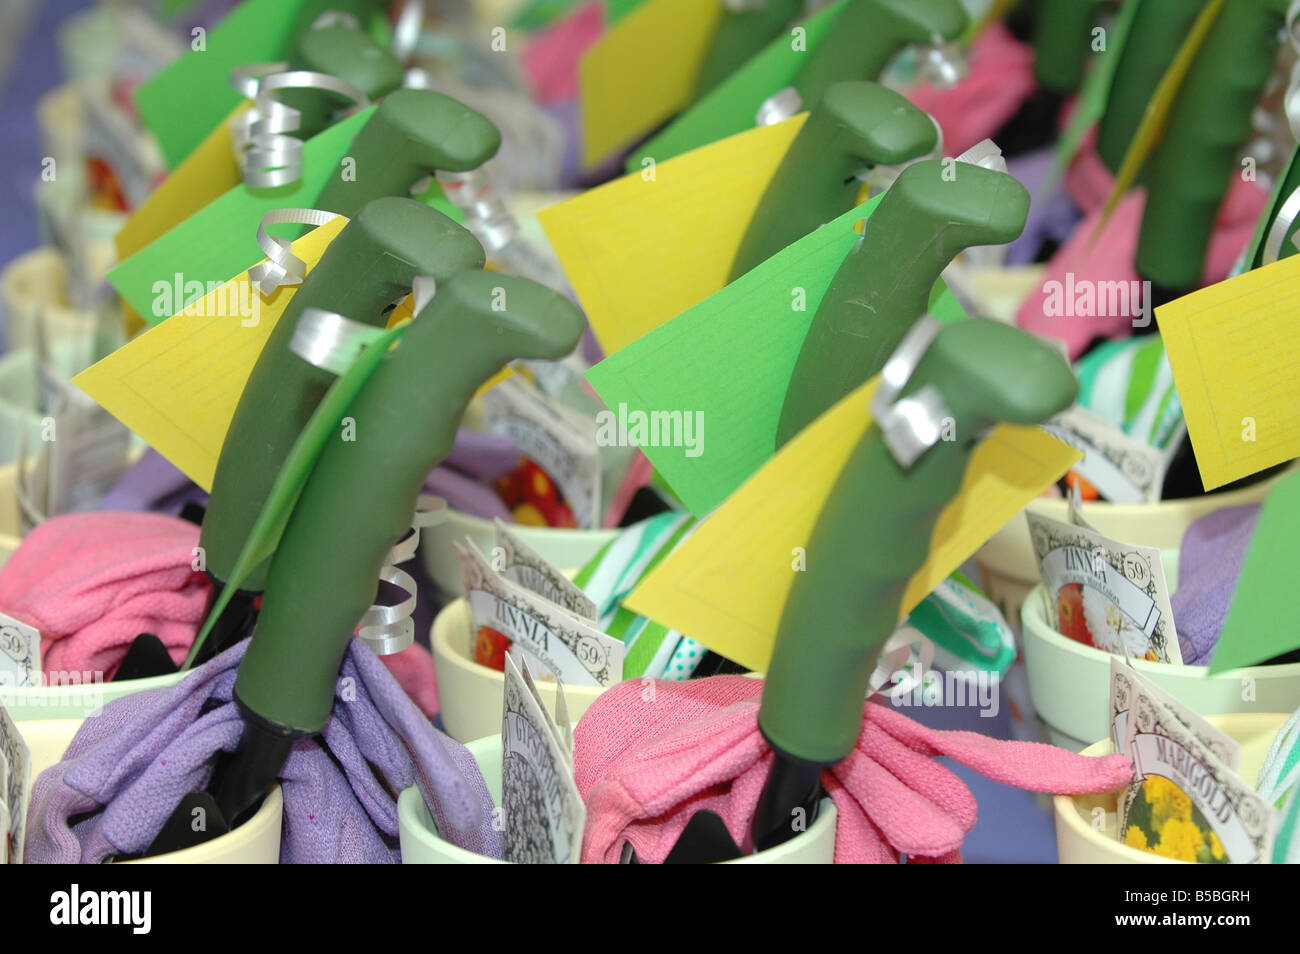 spring bridal shower party favors of gardening tools filling the frame lined up in a row